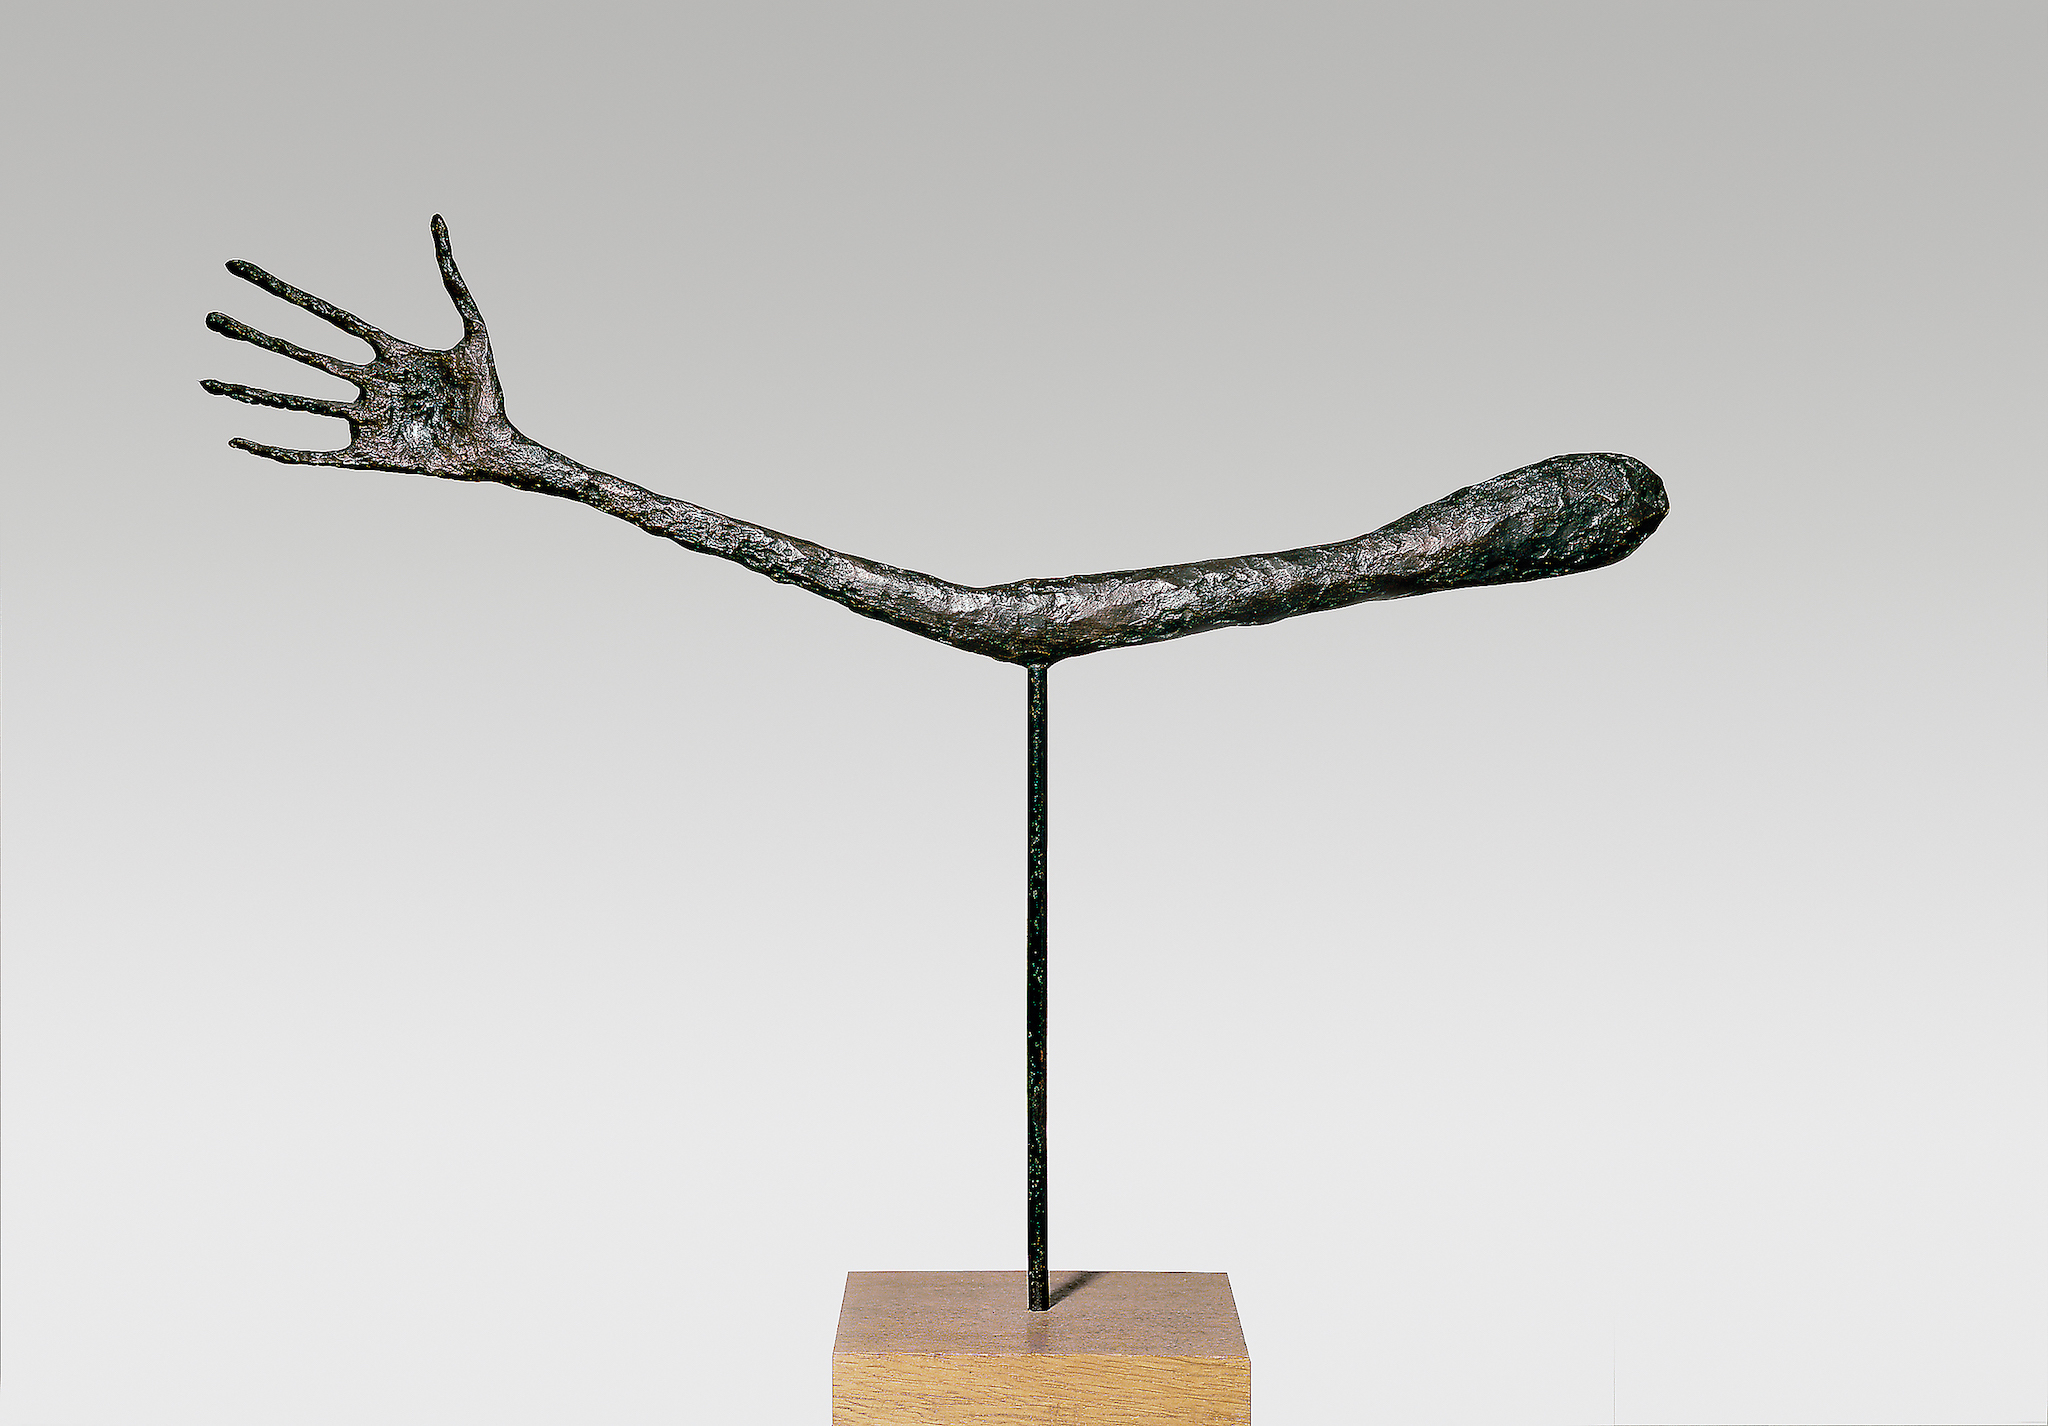 Five things you need to know about Alberto Giacometti